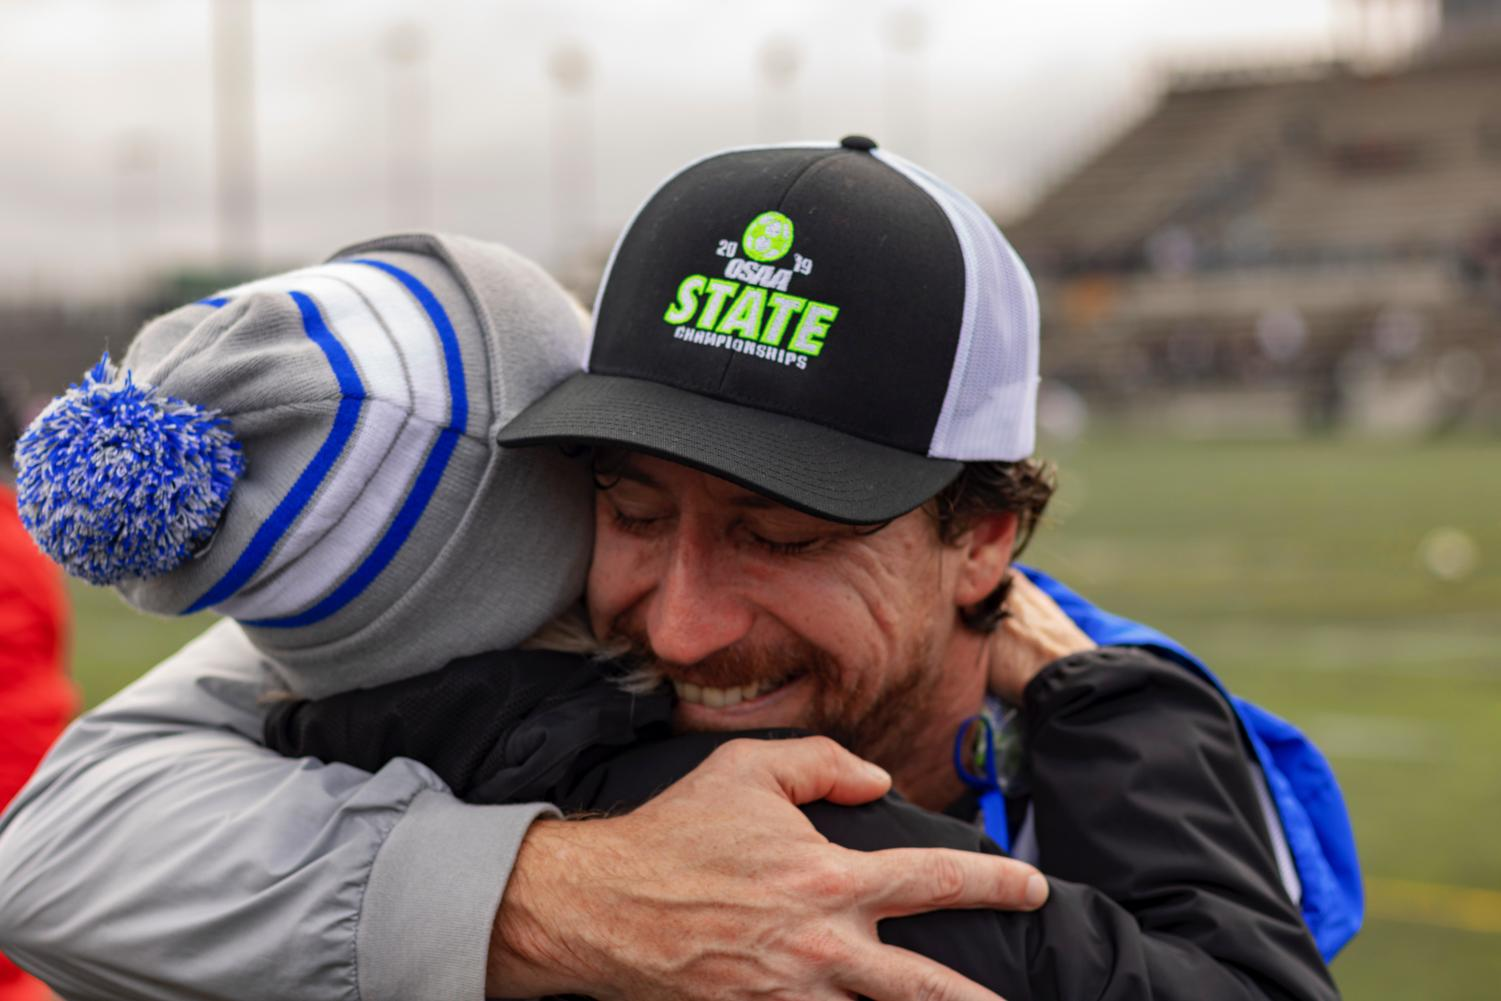 Coach+Altshuler+hugs+his+father+after+winning+the+state+championship.